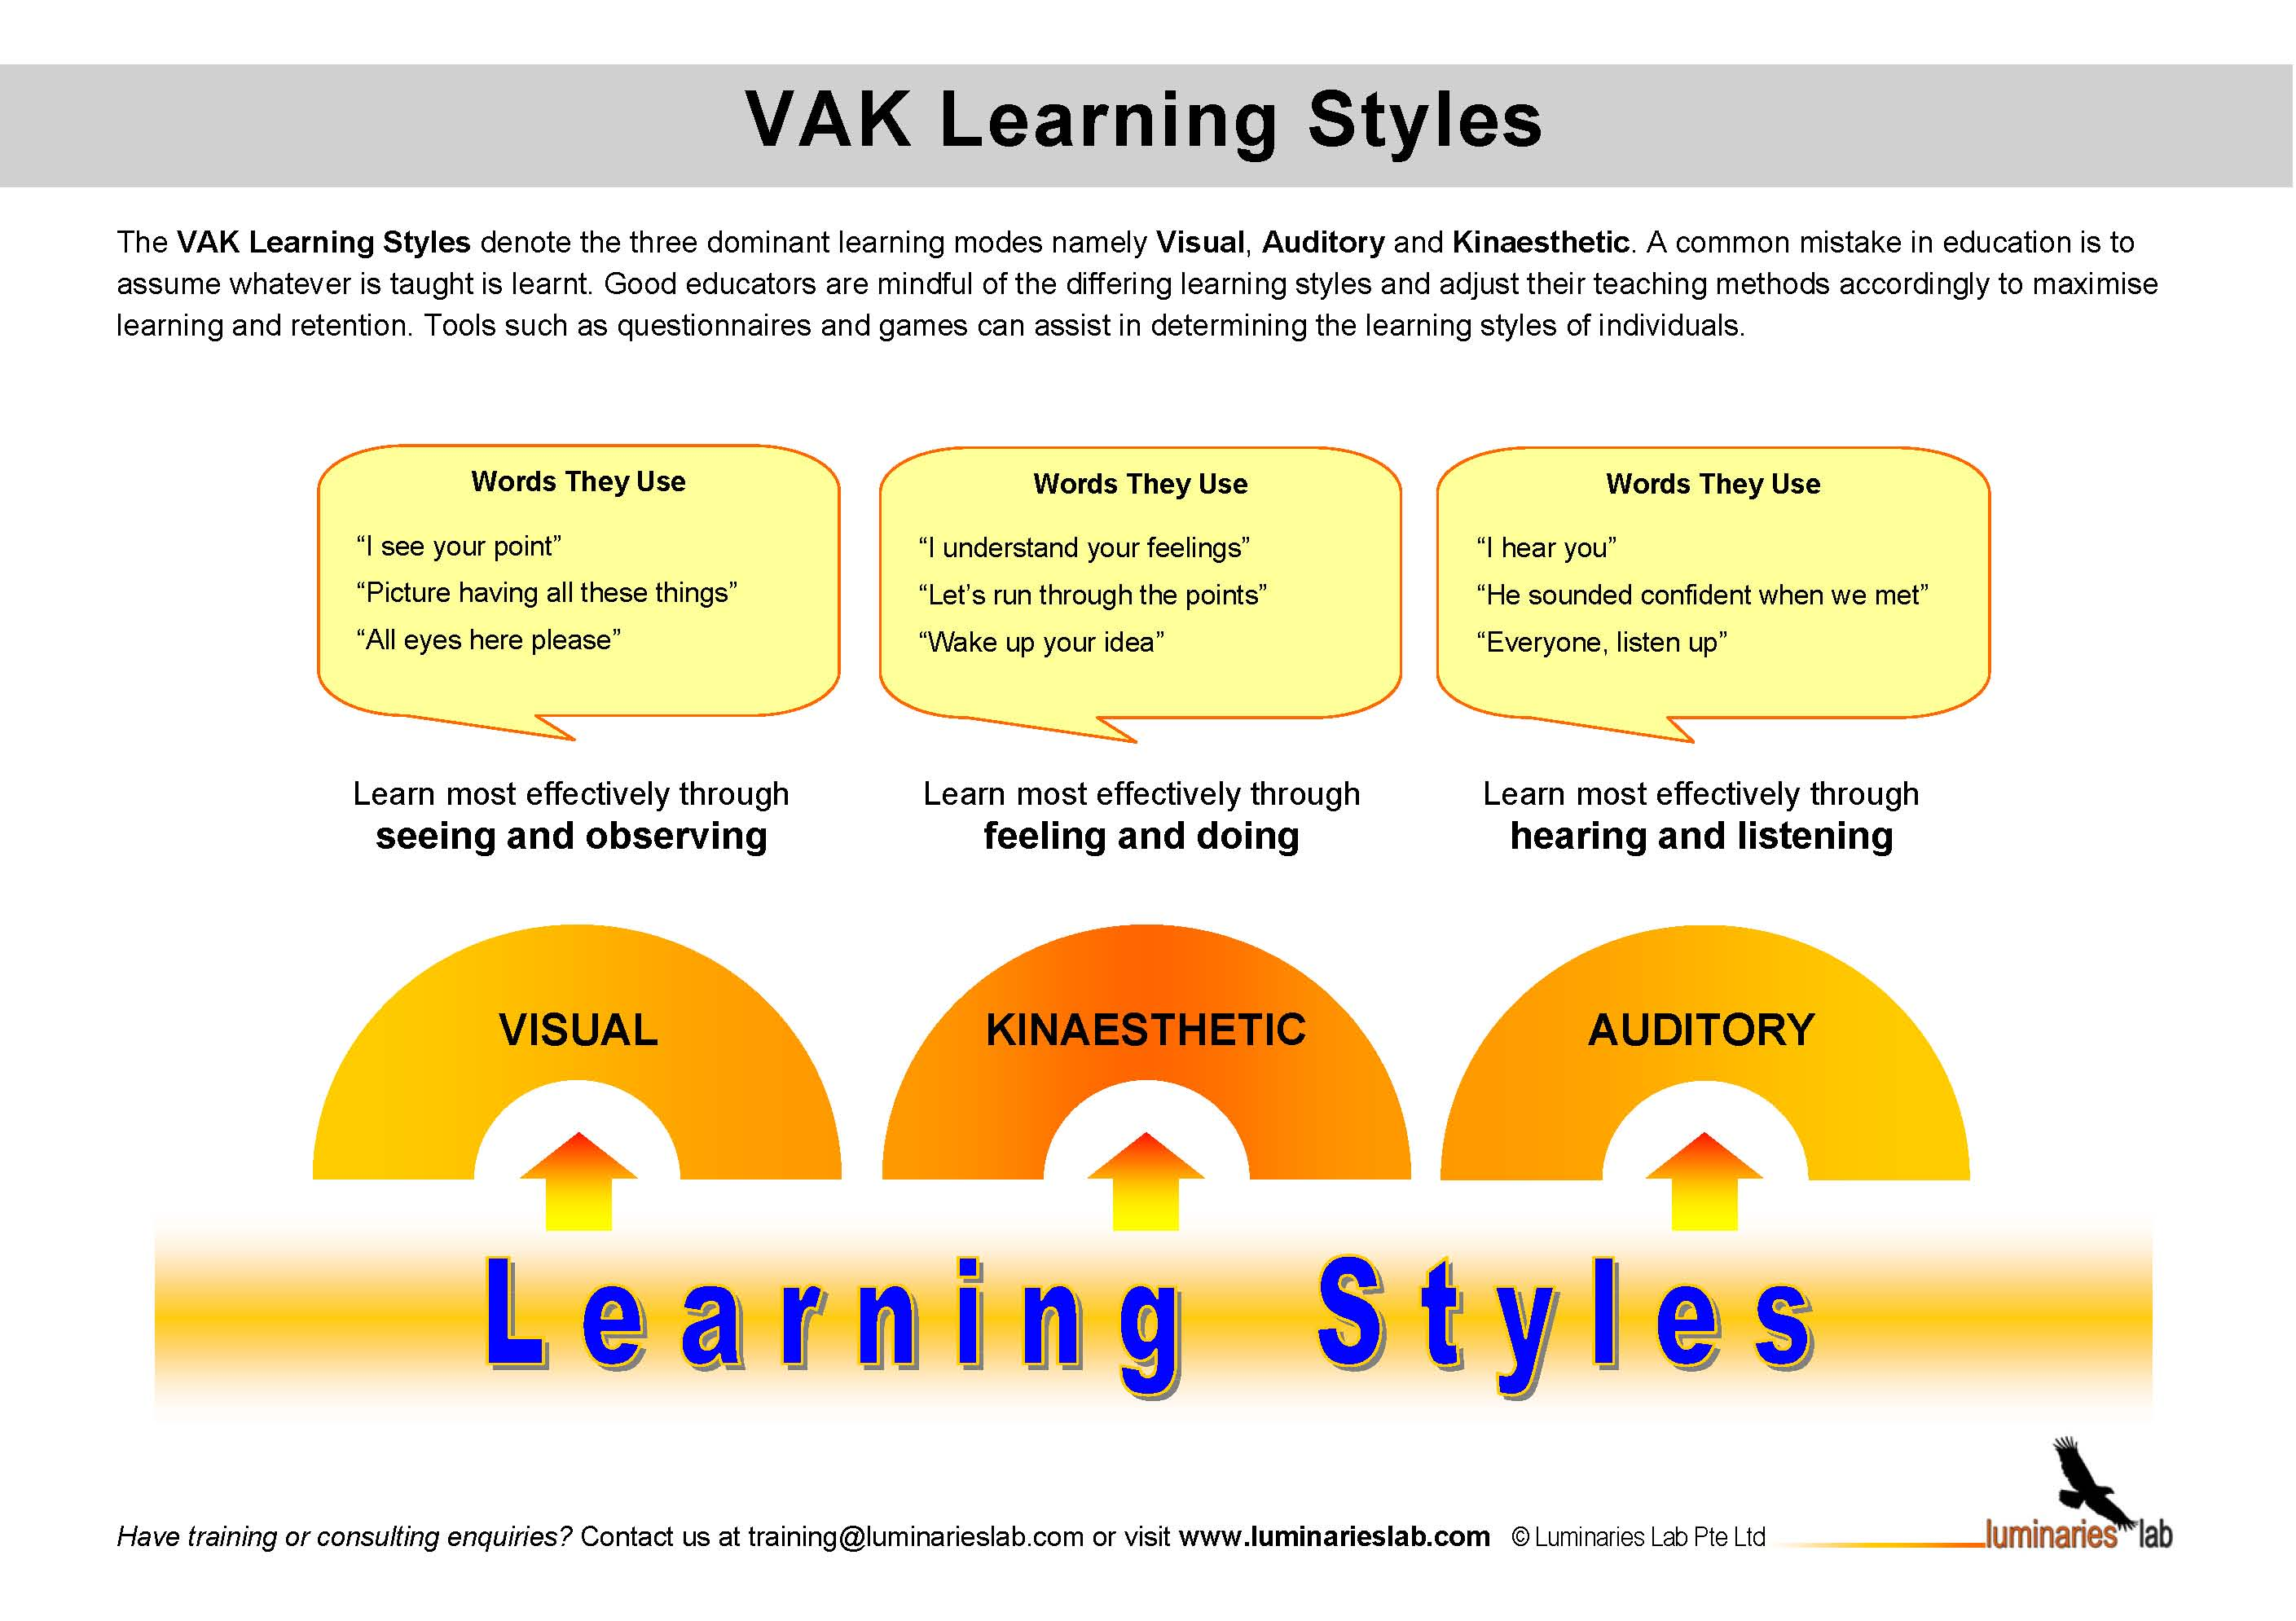 vak learning styles explanation The vak learning style uses the three main sensory receivers: visual, auditory, and kinesthetic (movement) to determine the dominant learning style.